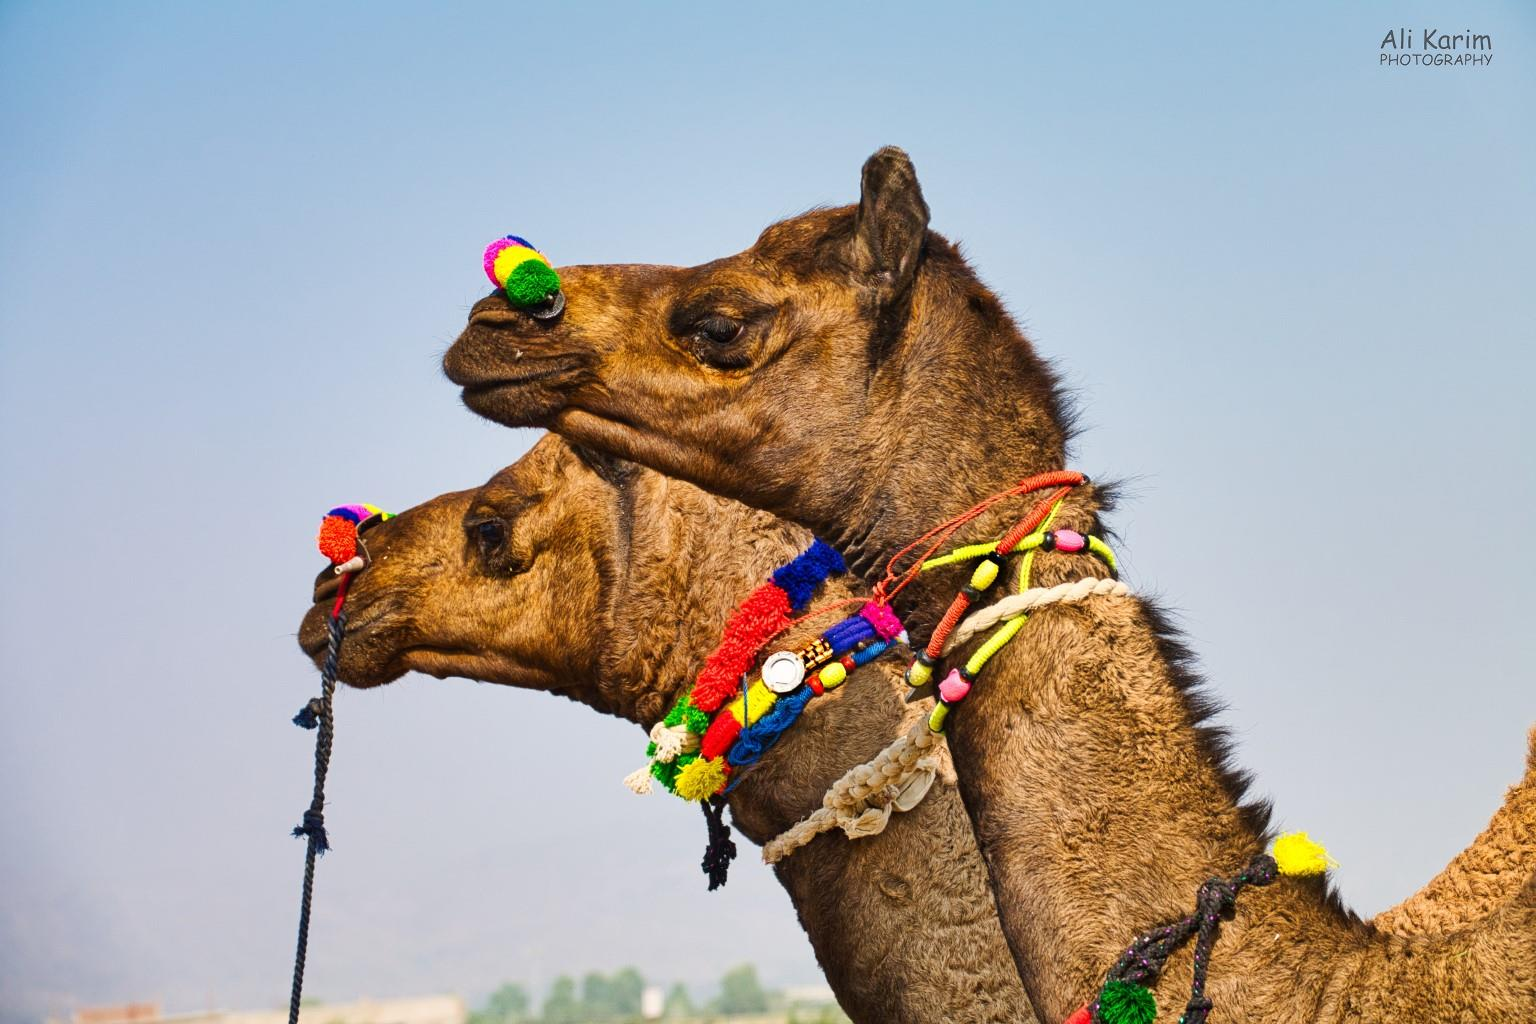 Pushkar, Rajasthan Adorned camels for sale